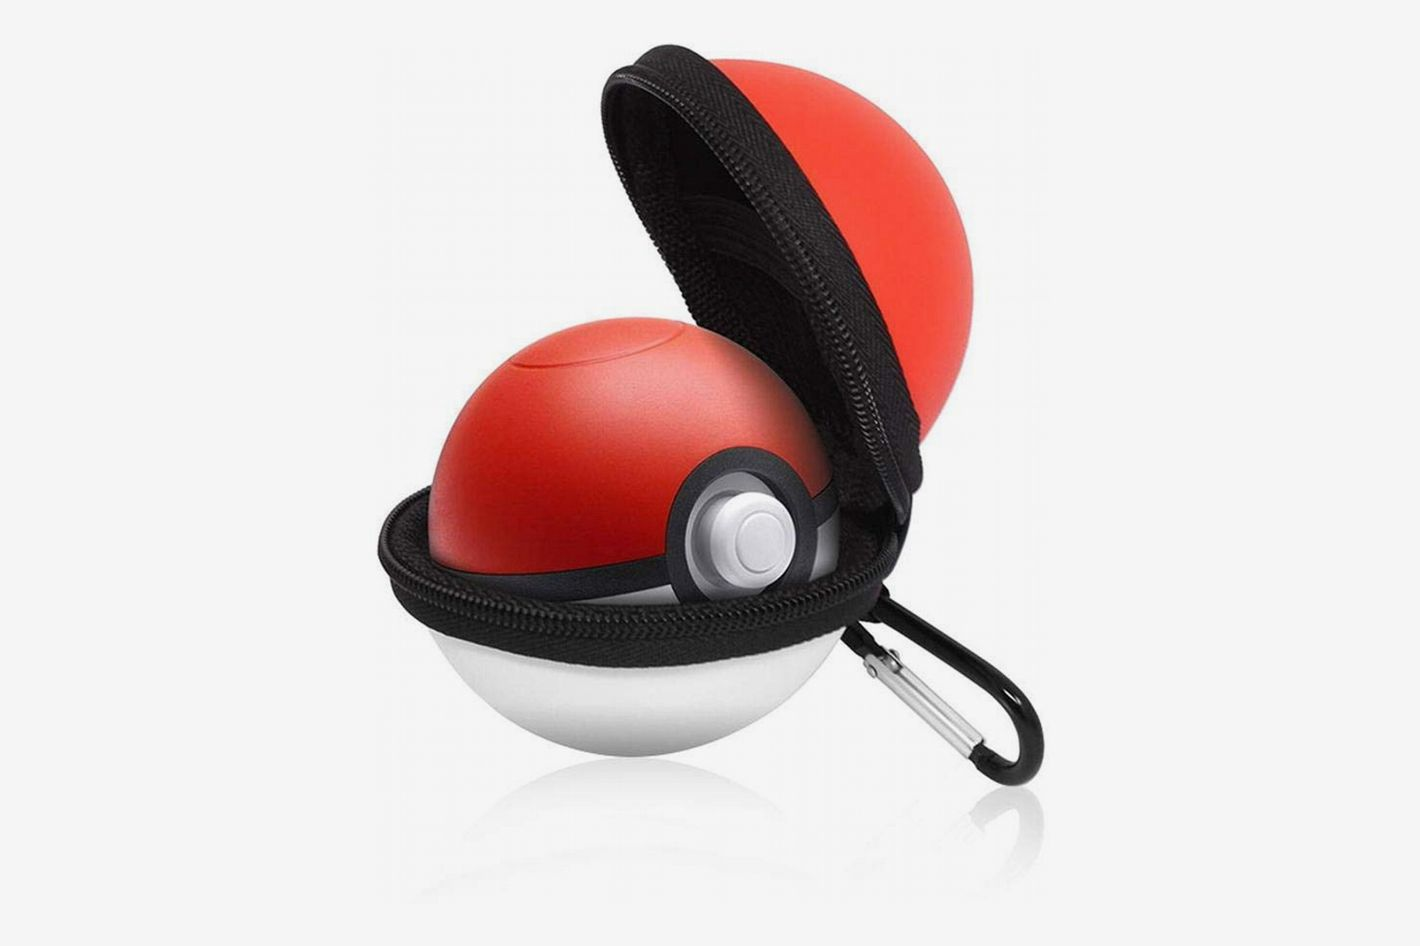 KinPot Carrying Case for Pokeball Plus Controller